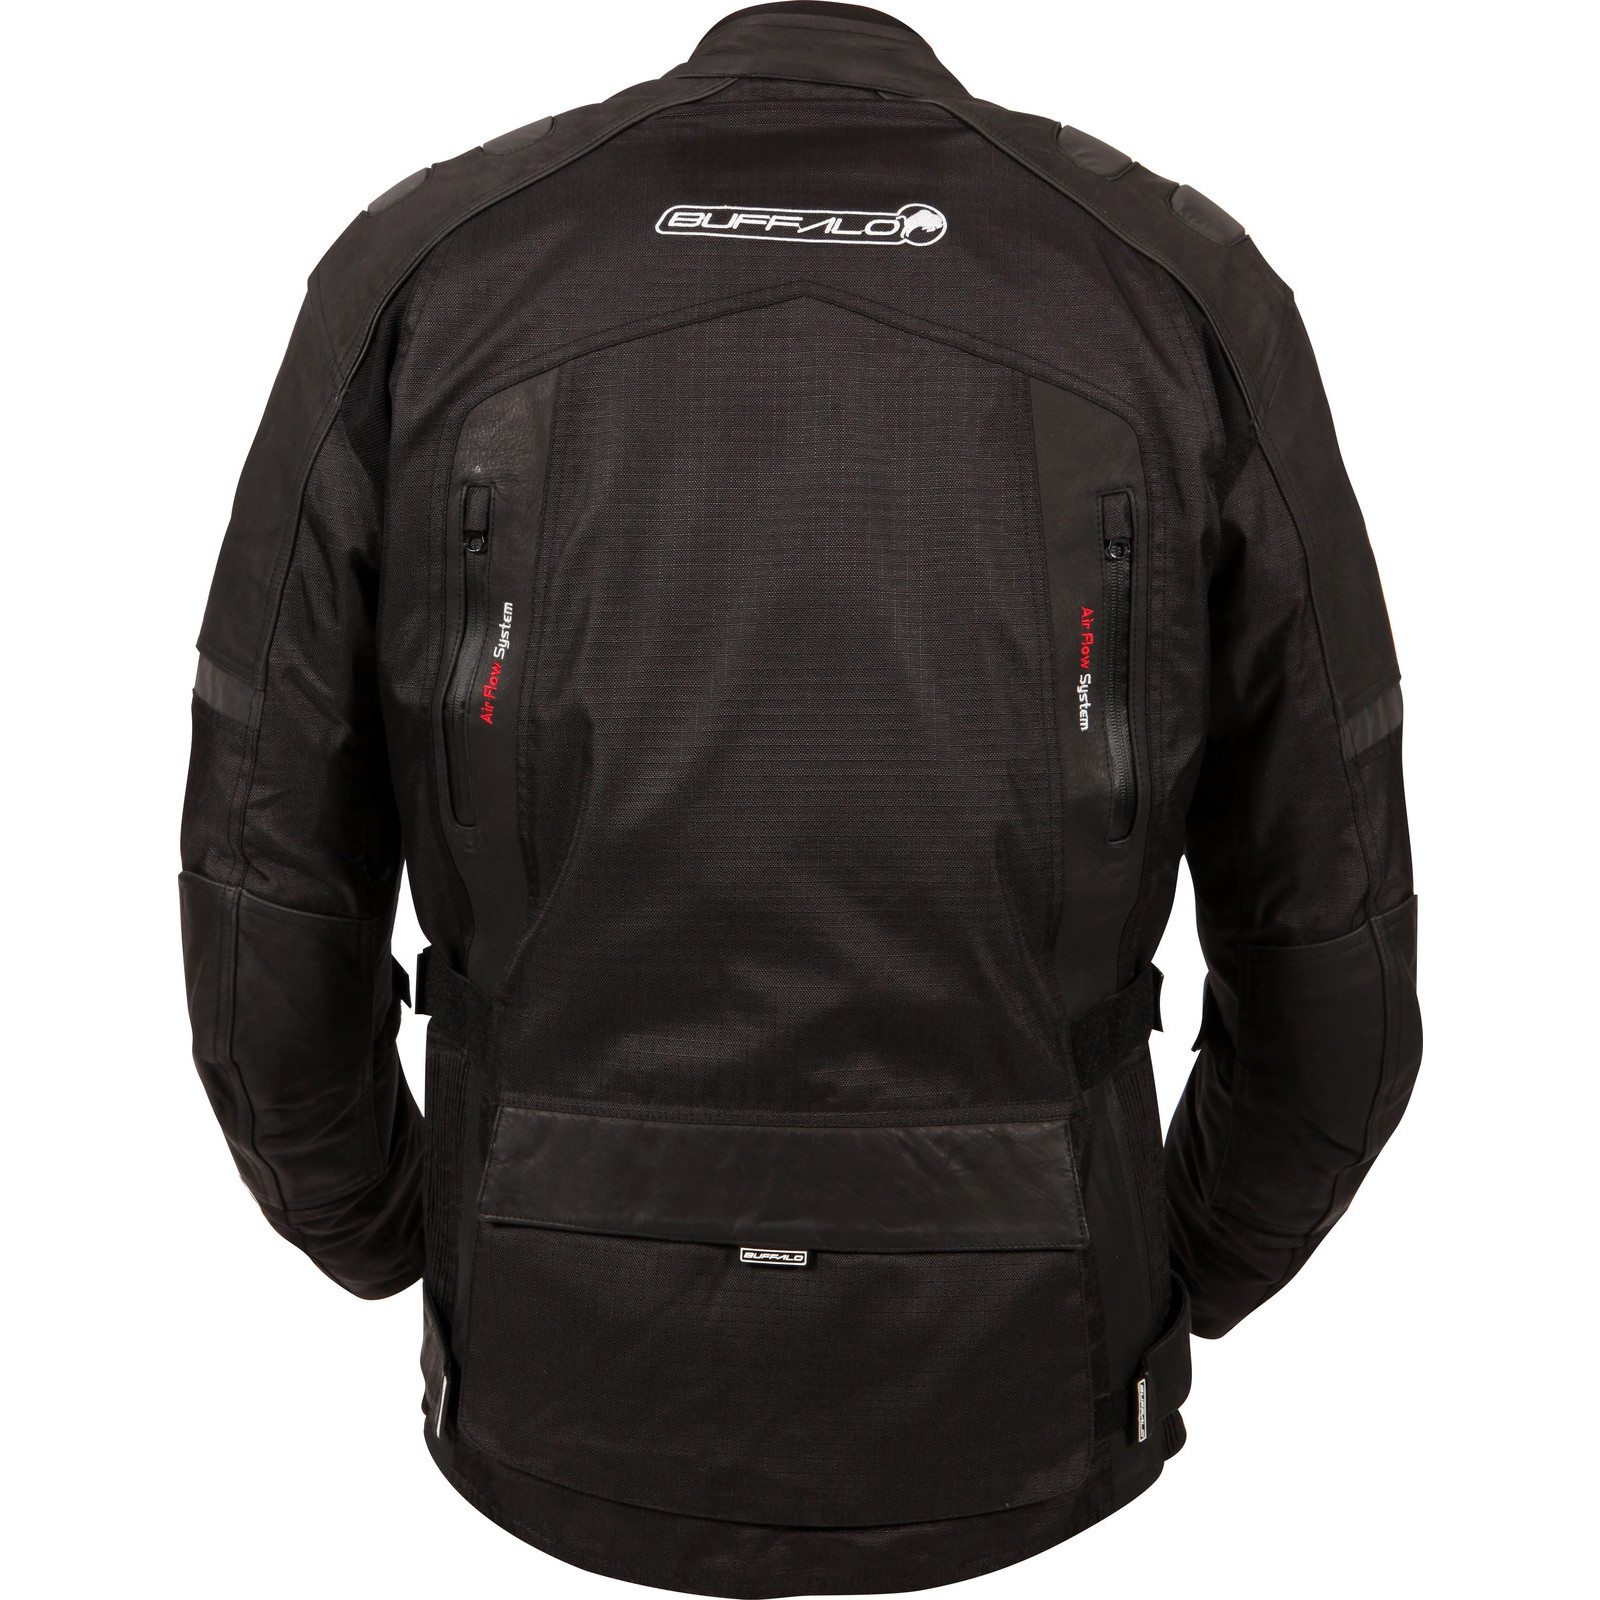 Buffalo-Explorer-Leather-Motorcycle-Bike-Jacket-Waterproof-Windproof-Breathable